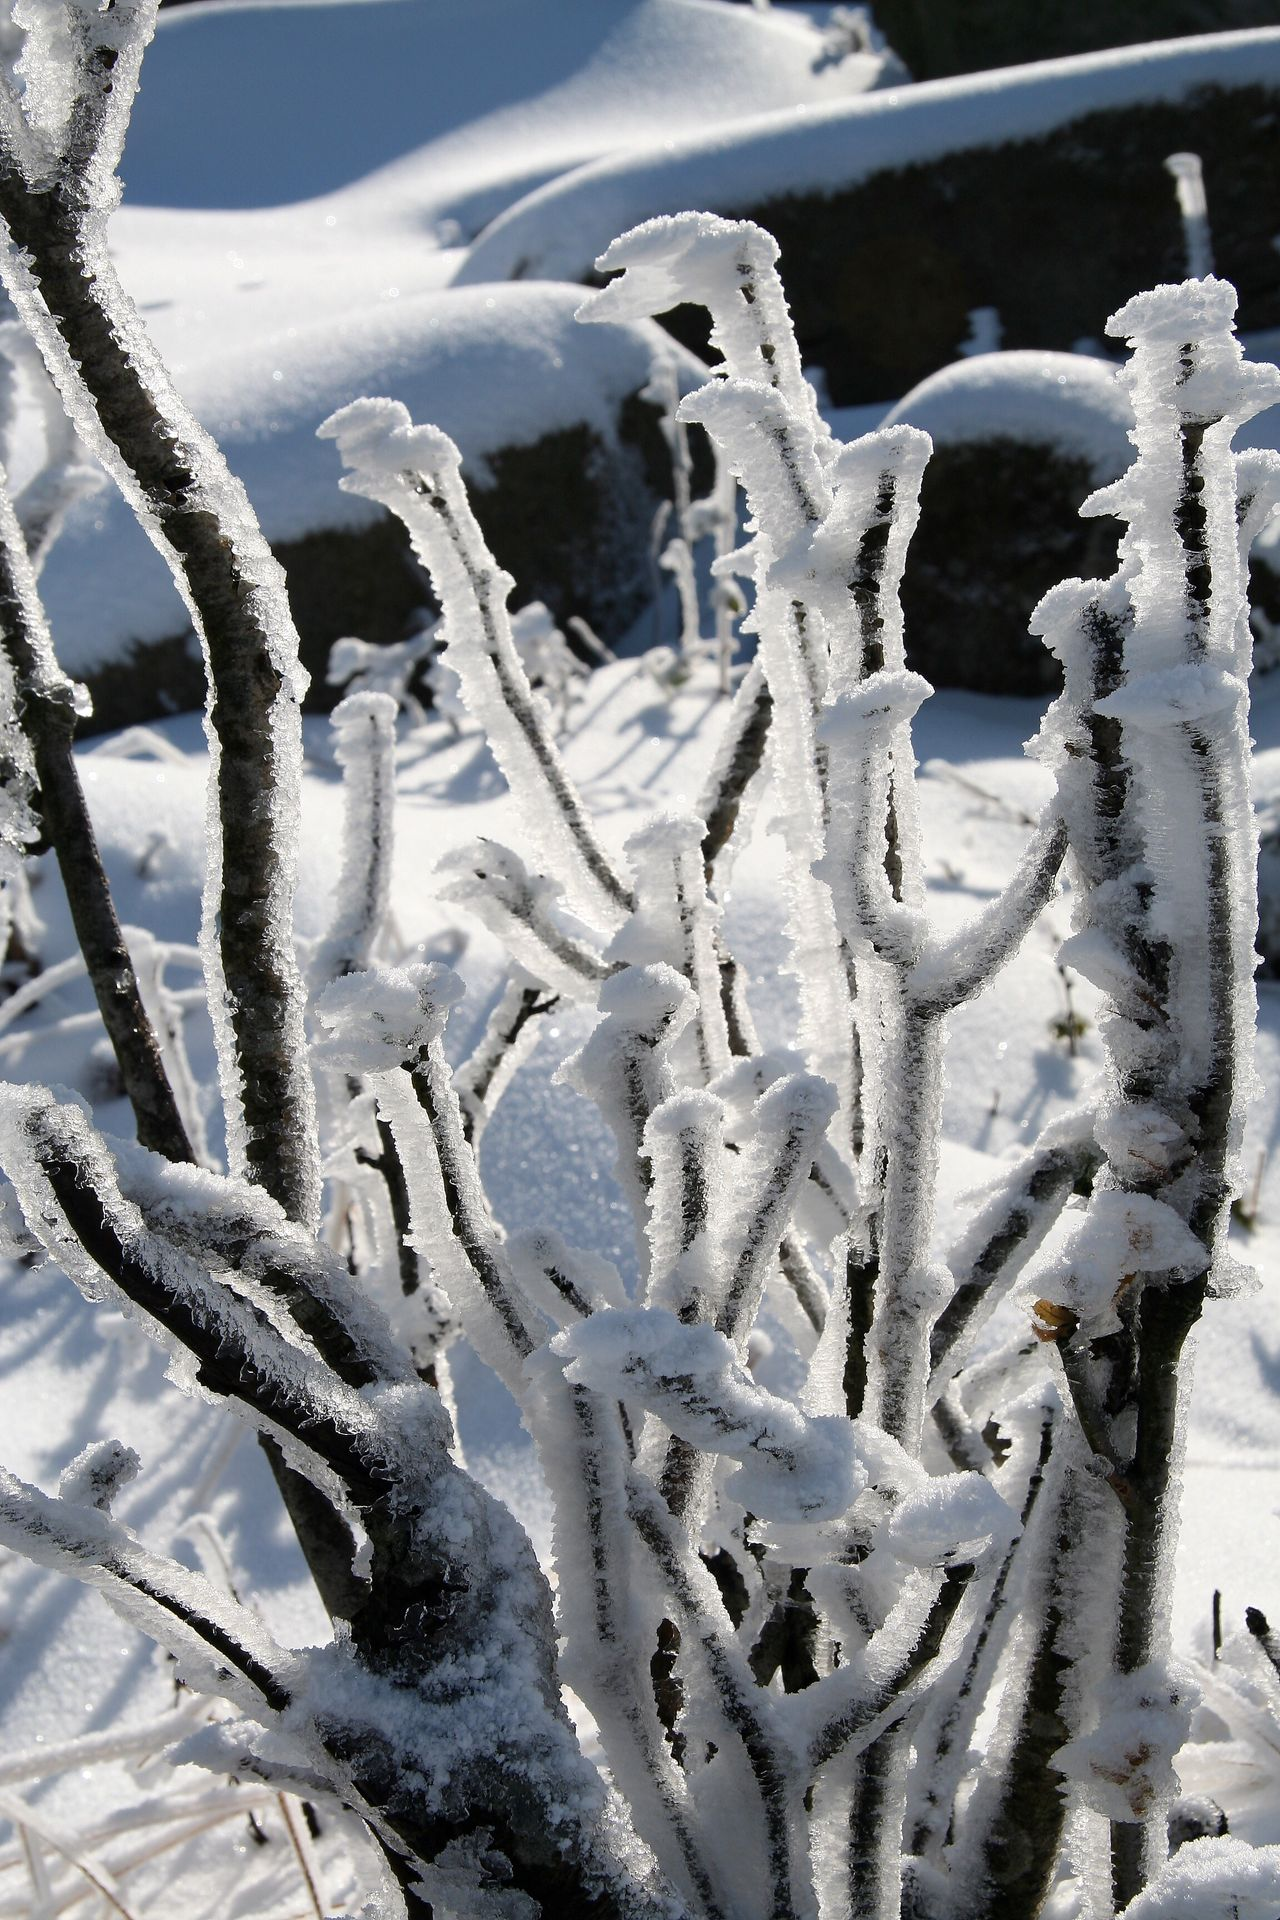 Frosted Frosted Nature Frosted Trees Frosted Bough Shrub Winter Wintertime